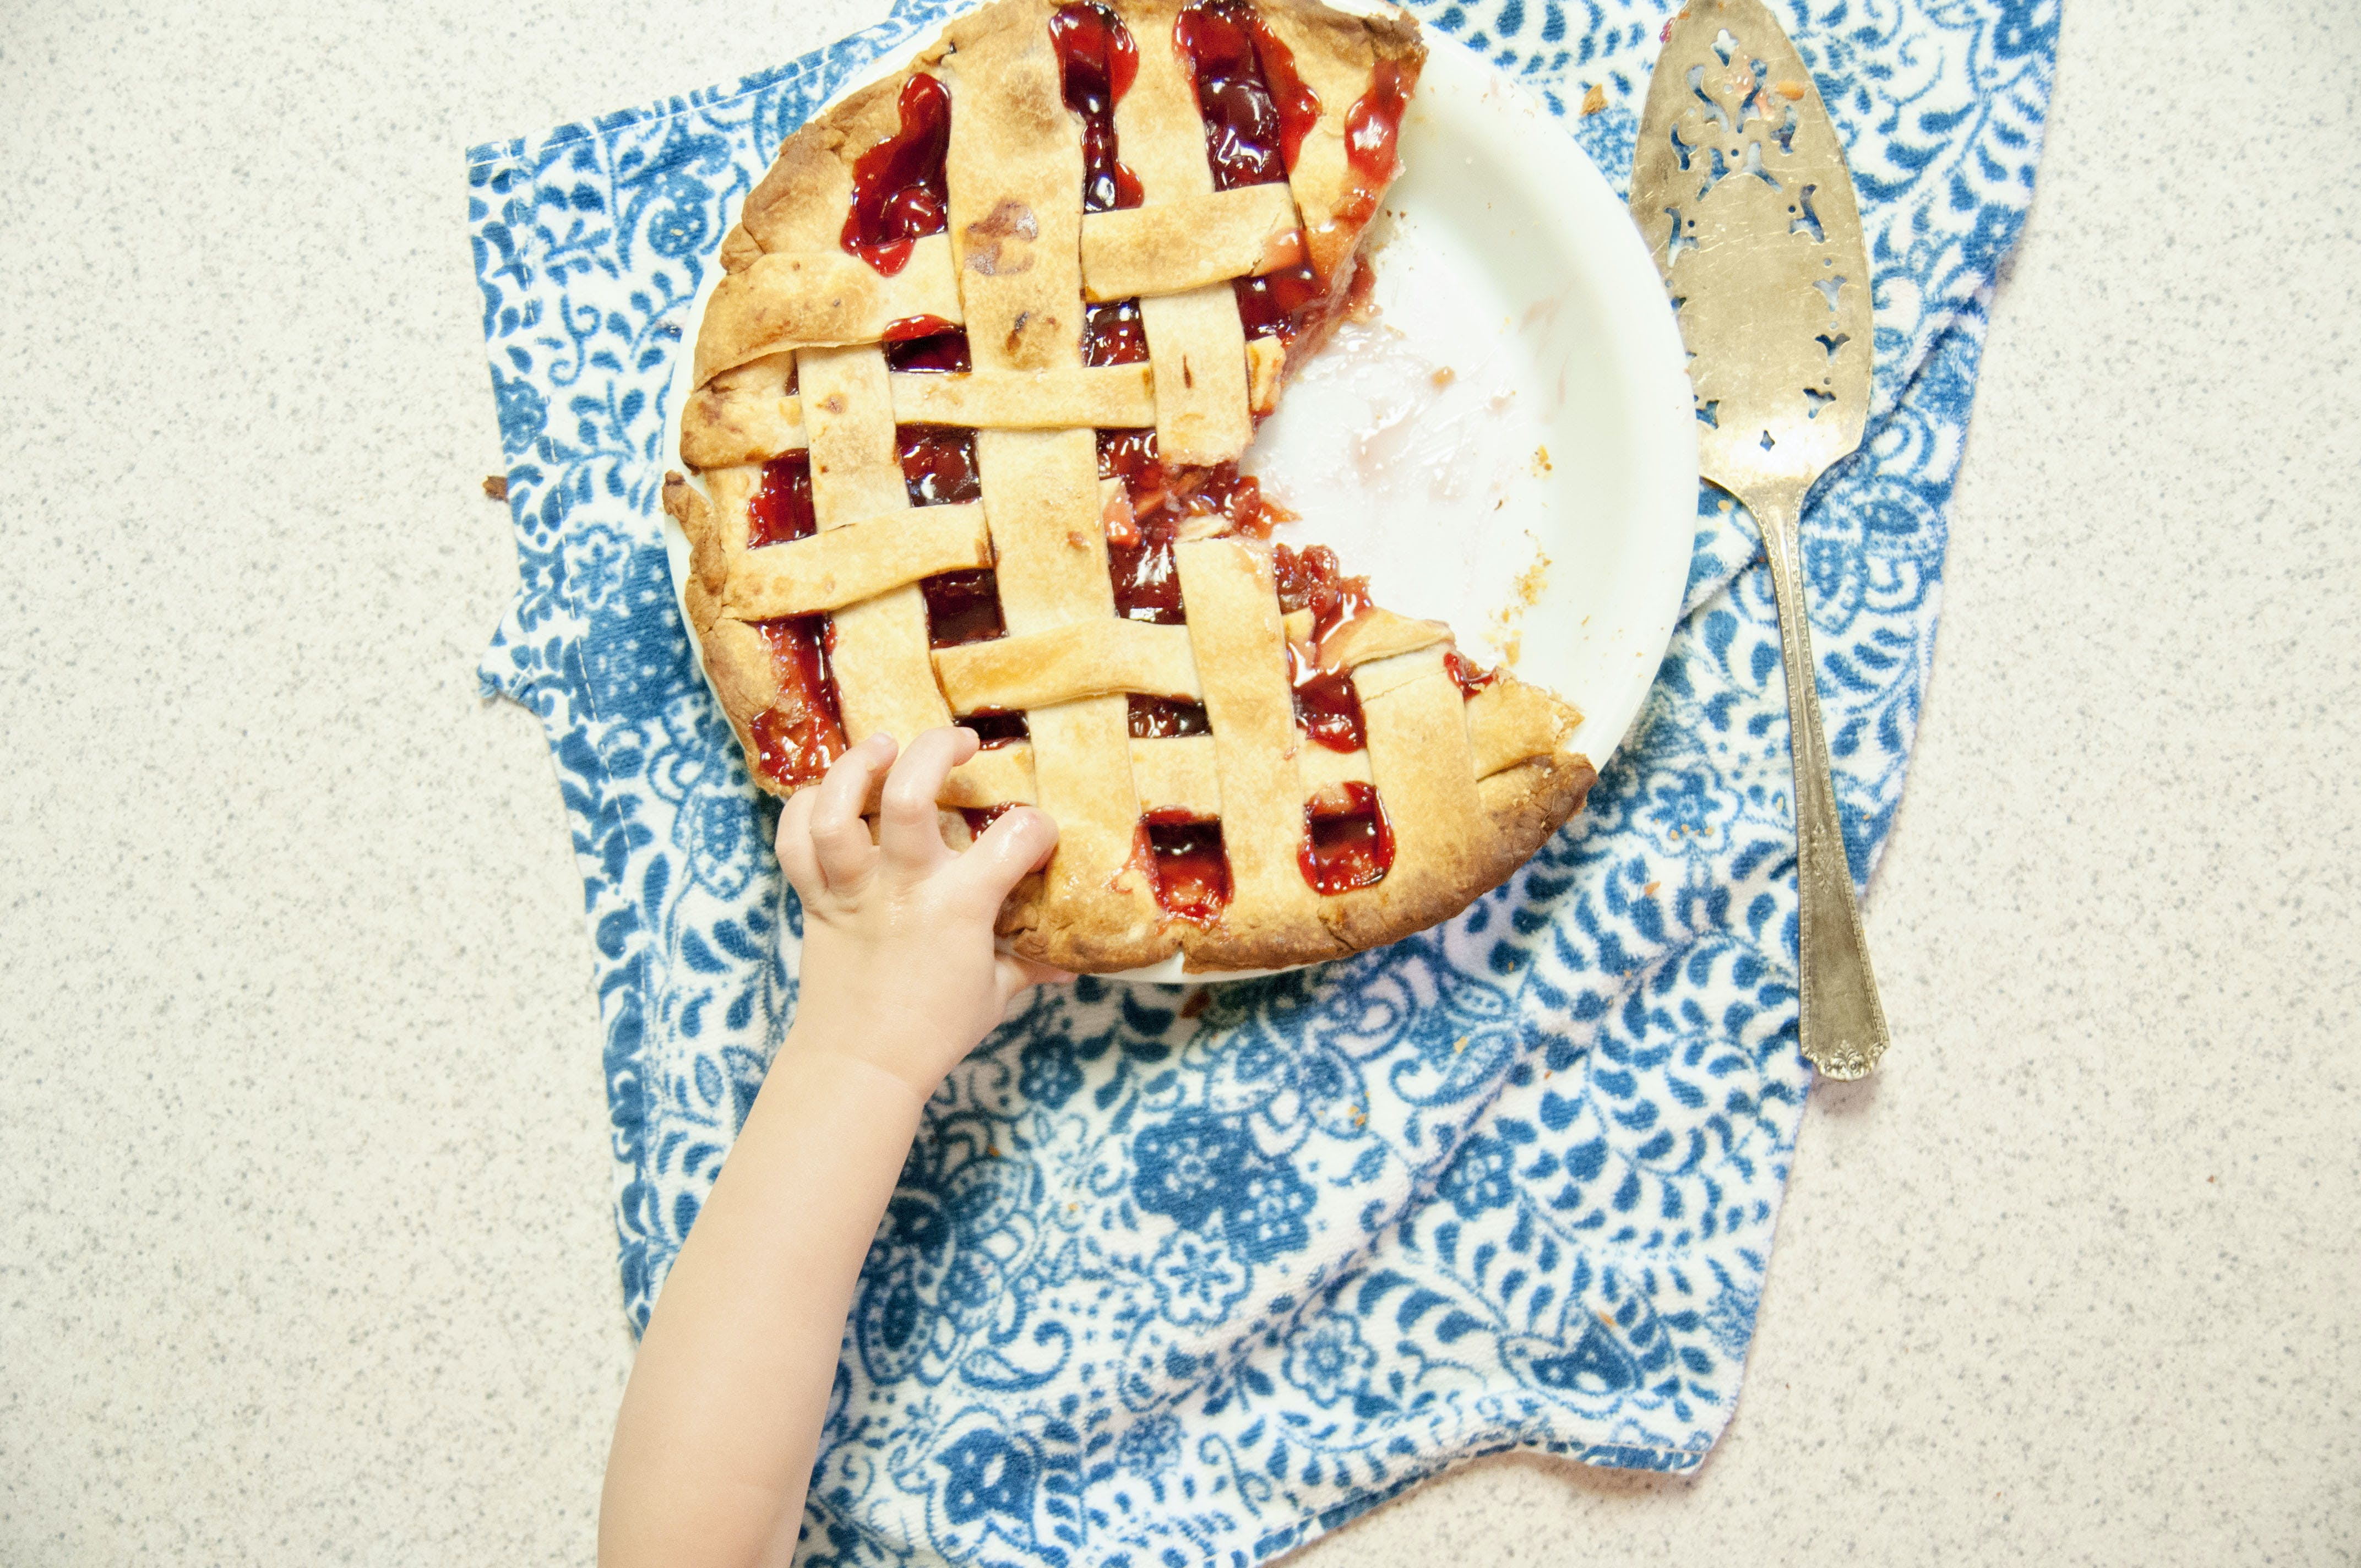 Free stock photo of blue, blue towel, cherry pie, child